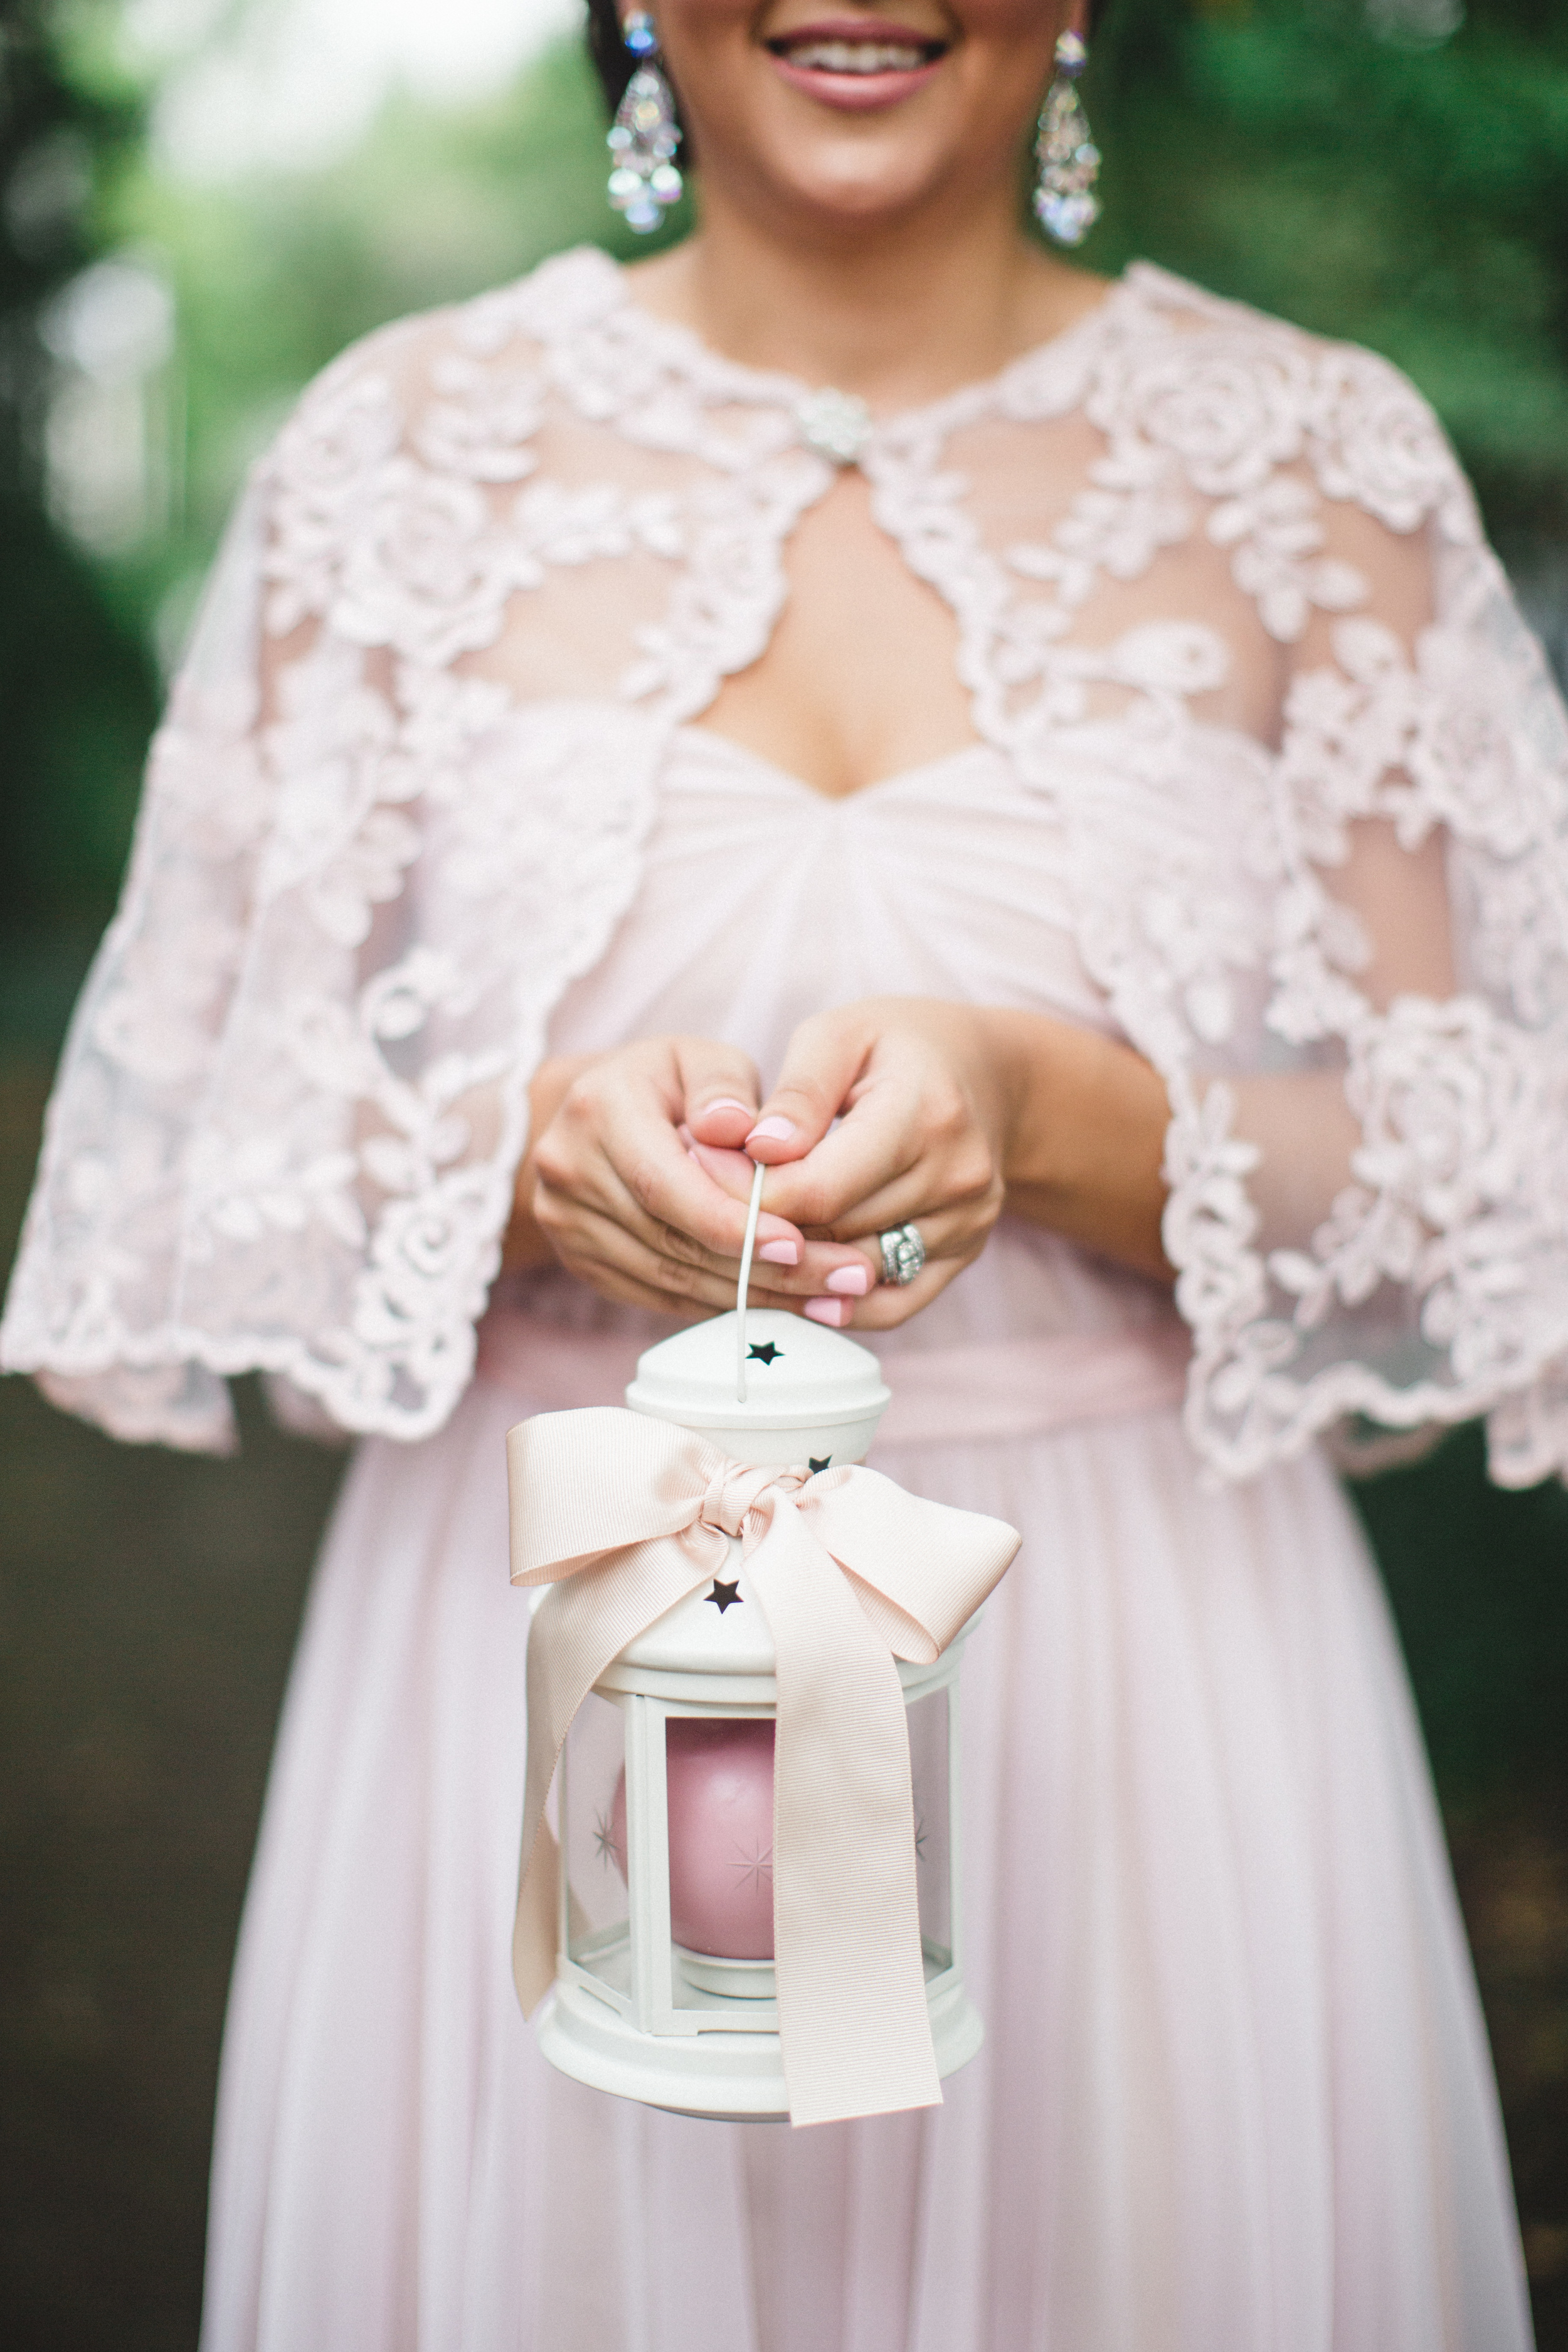 daniela-and-pedro-wedding-izzy-hudgins-photography-a-to-zinnias-whitfield-square-charles-h-morris-center-wedding-ivoyy-and-beau-bridal-boutique-dorie-hayley-paige-savannah-wedding-planner-savannah-bridal-boutique-savannah-weddings-18.jpg